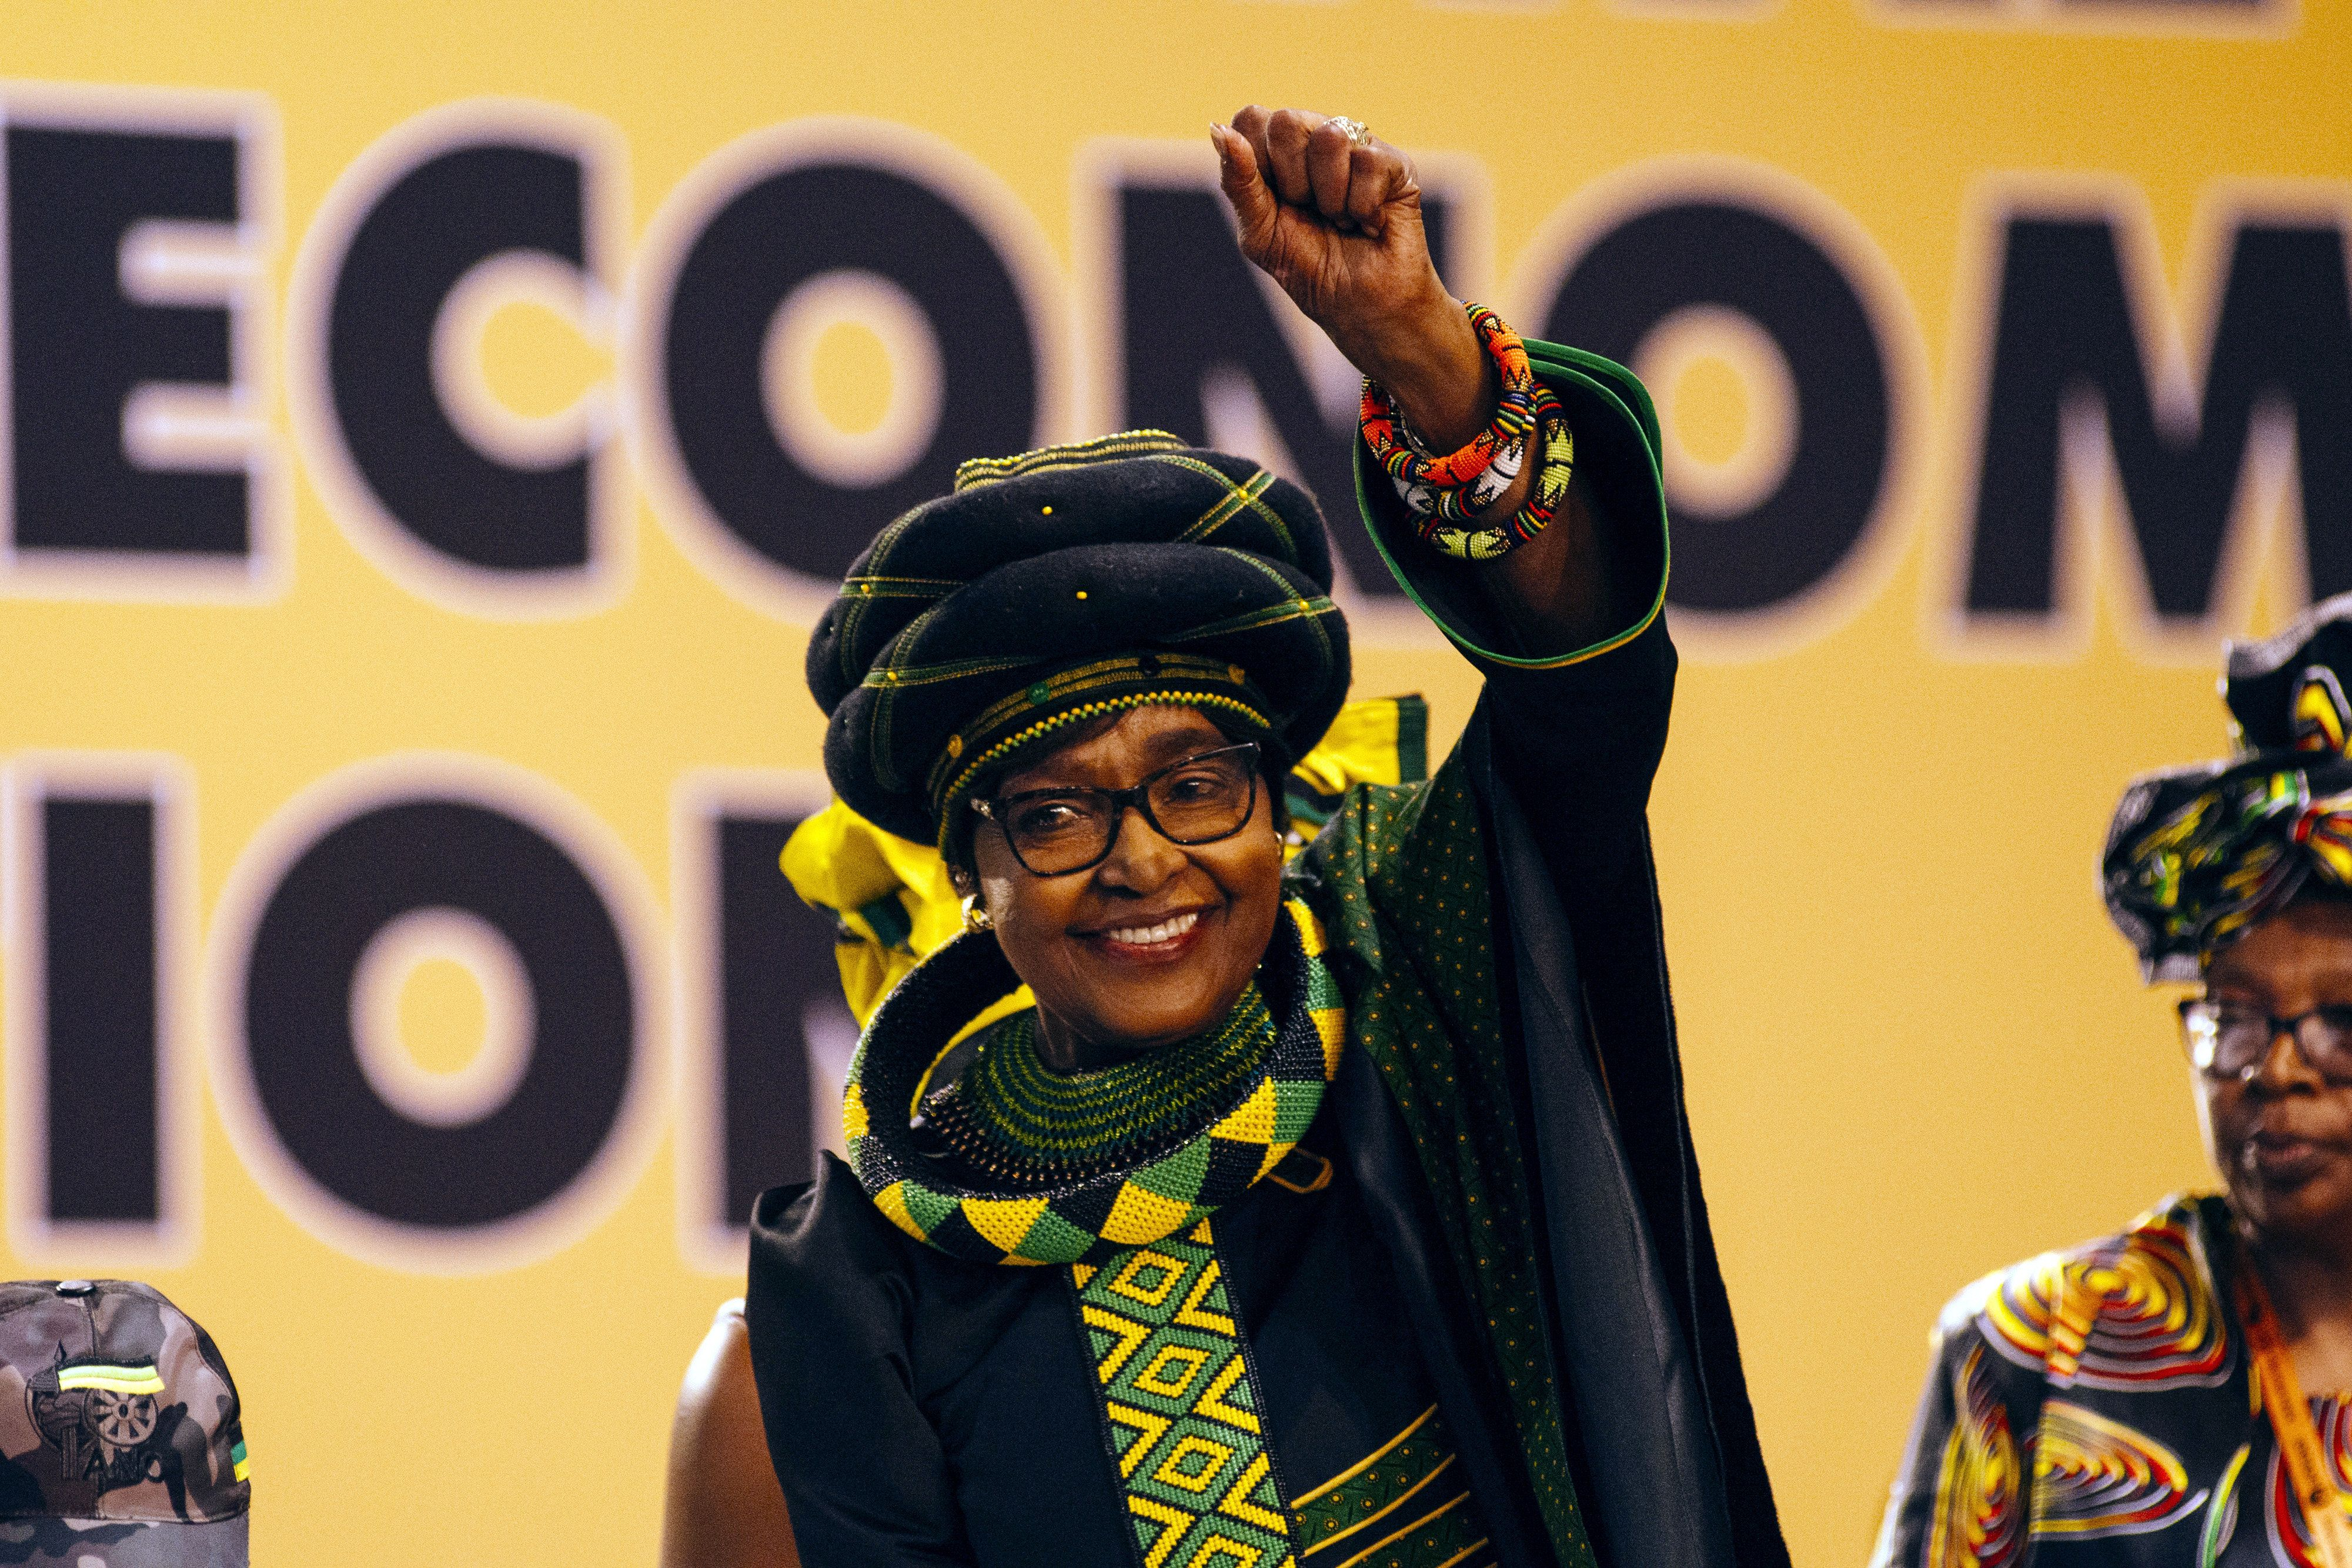 Winnie Madikizela-Mandela, wife of former president Nelson Mandela, greets the audience during the 54th national conference of the African National Congress party (ANC) in Johannesburg, South Africa, on Saturday, Dec. 16, 2017. South Africa's president Jacob Zuma urged the ruling African National Congress to fight factionalism and consider accommodating members of rival slates in its new leadership that will be elected at its national conference. Photographer: Waldo Swiegers/Bloomberg via Getty Images